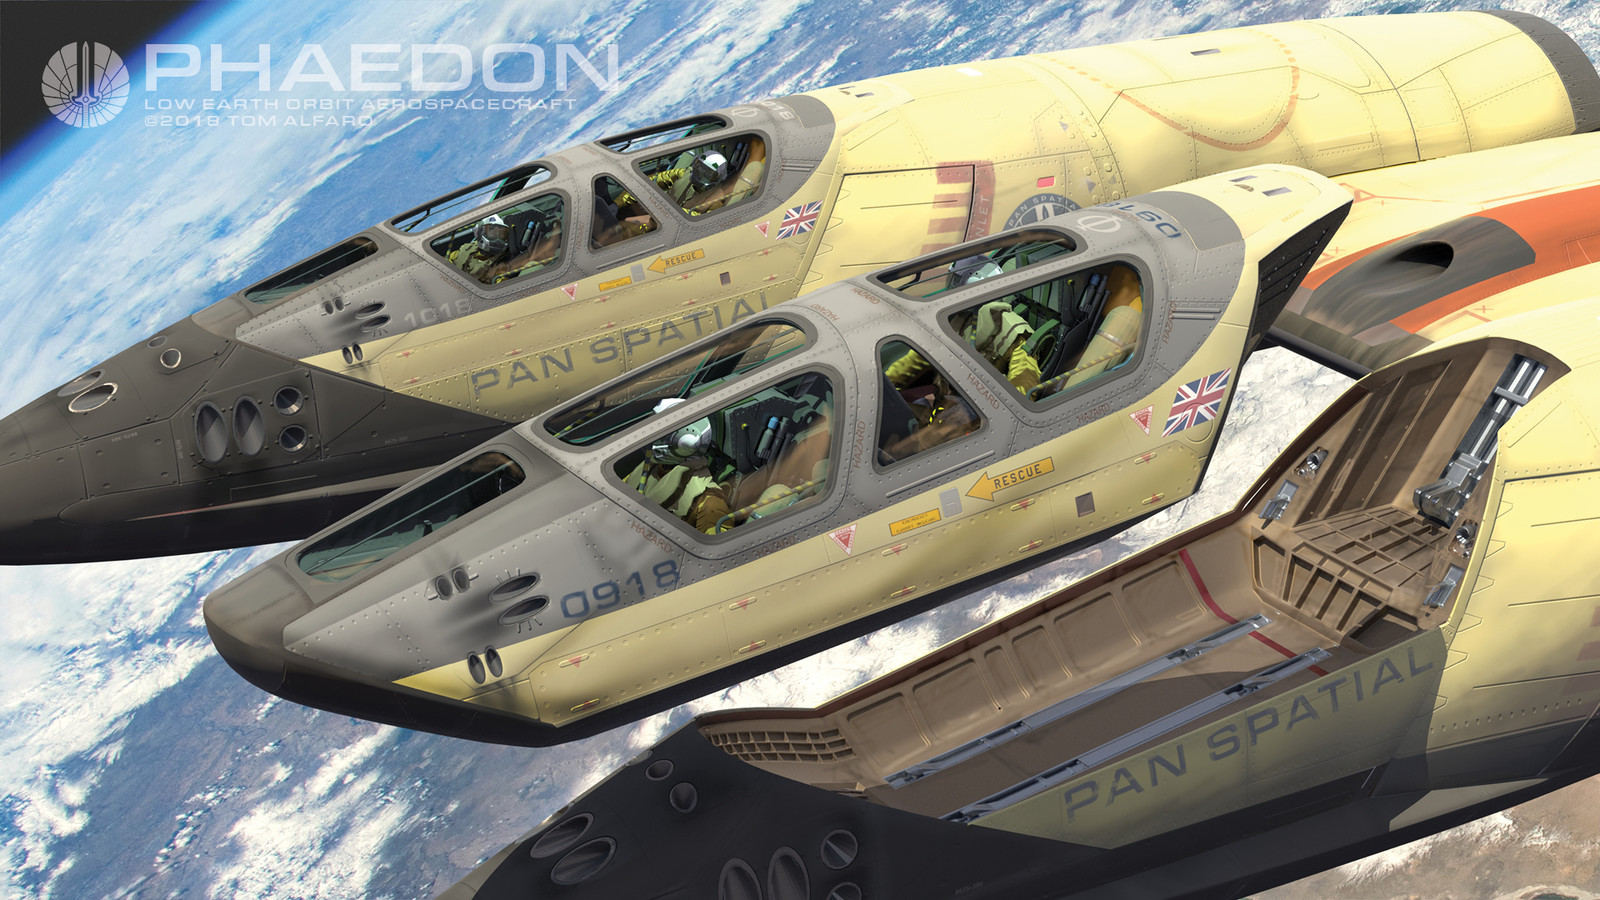 Phaedon Aerospacecraft